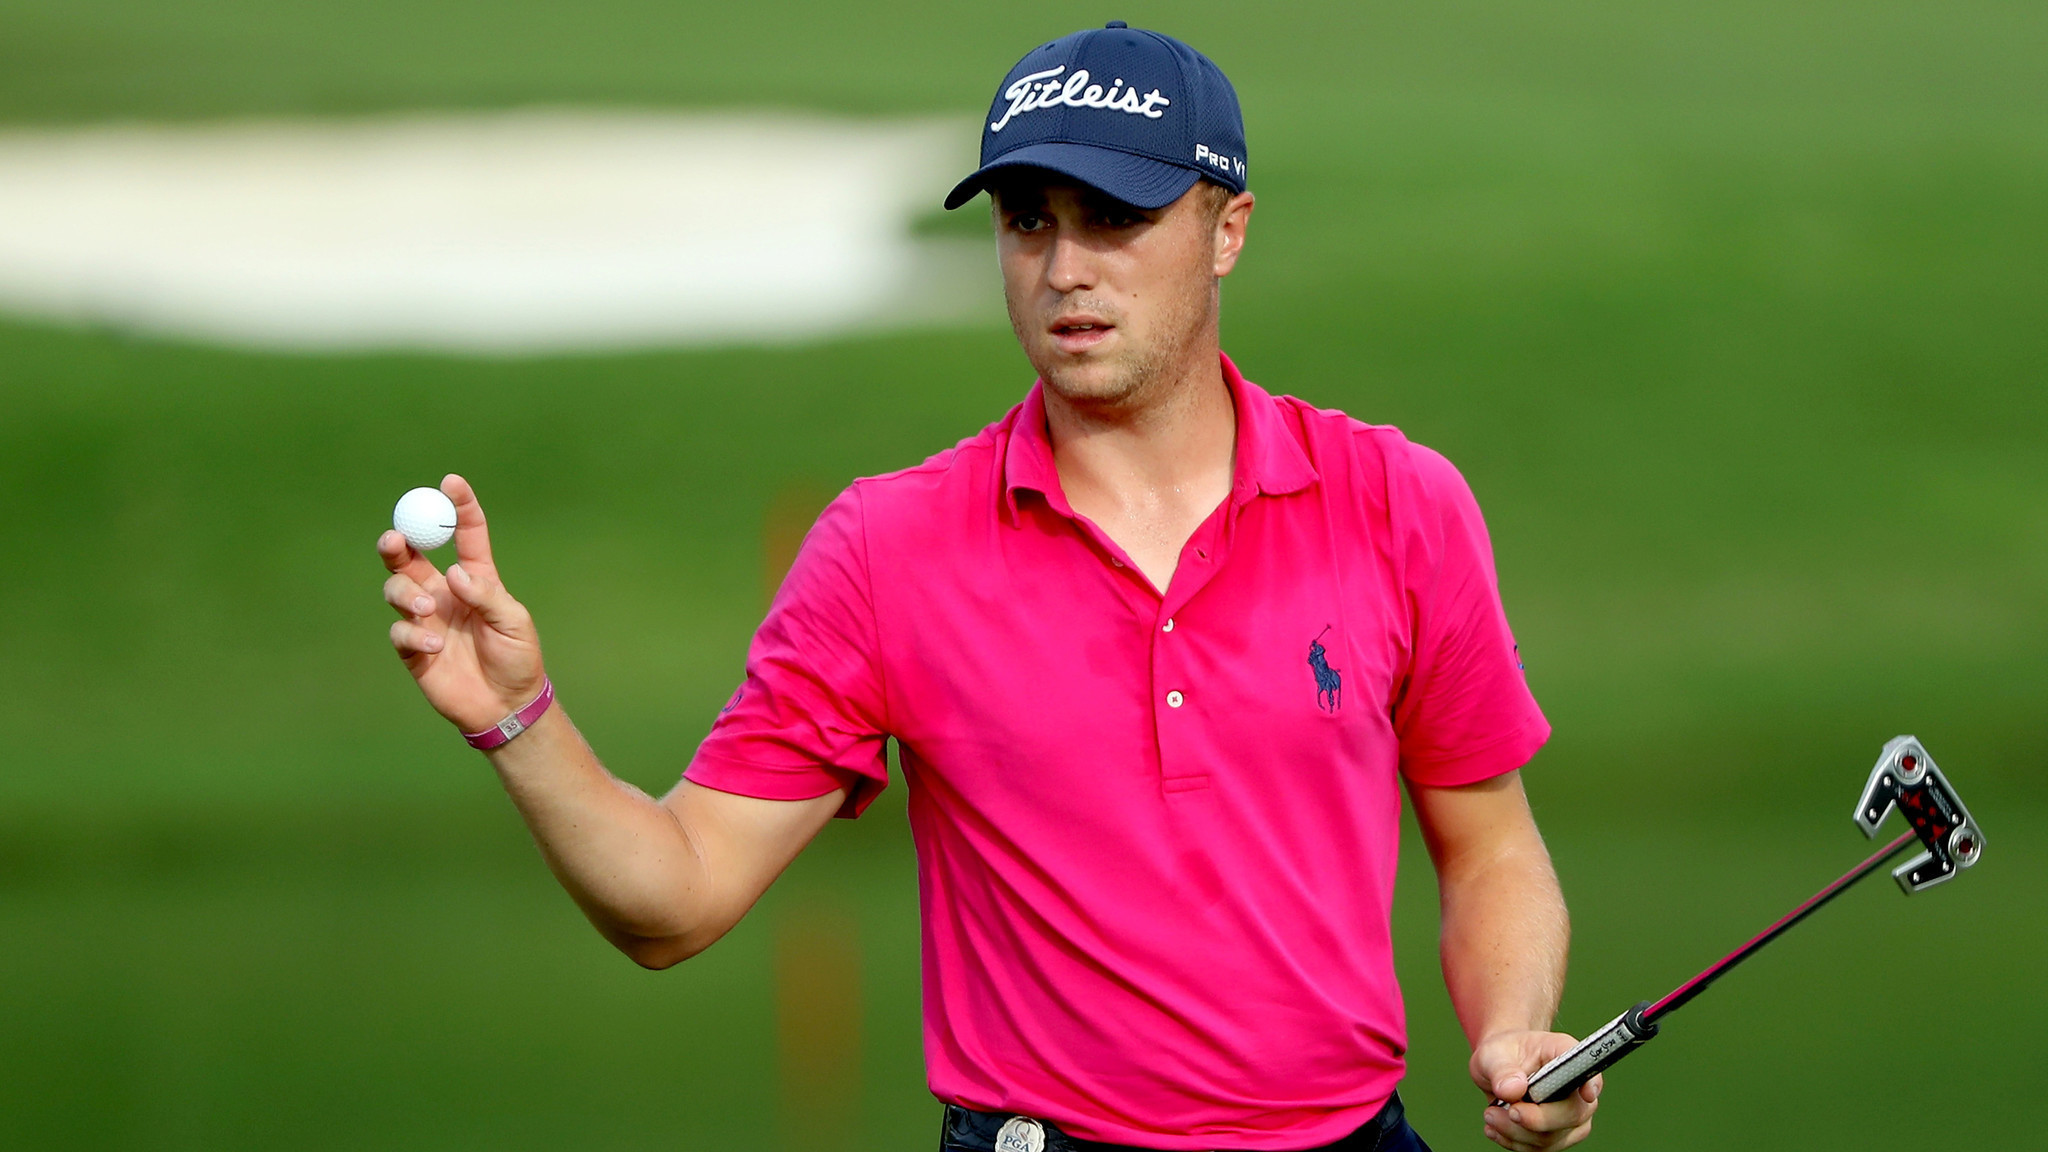 justin thomas wins his first major by claiming victory at